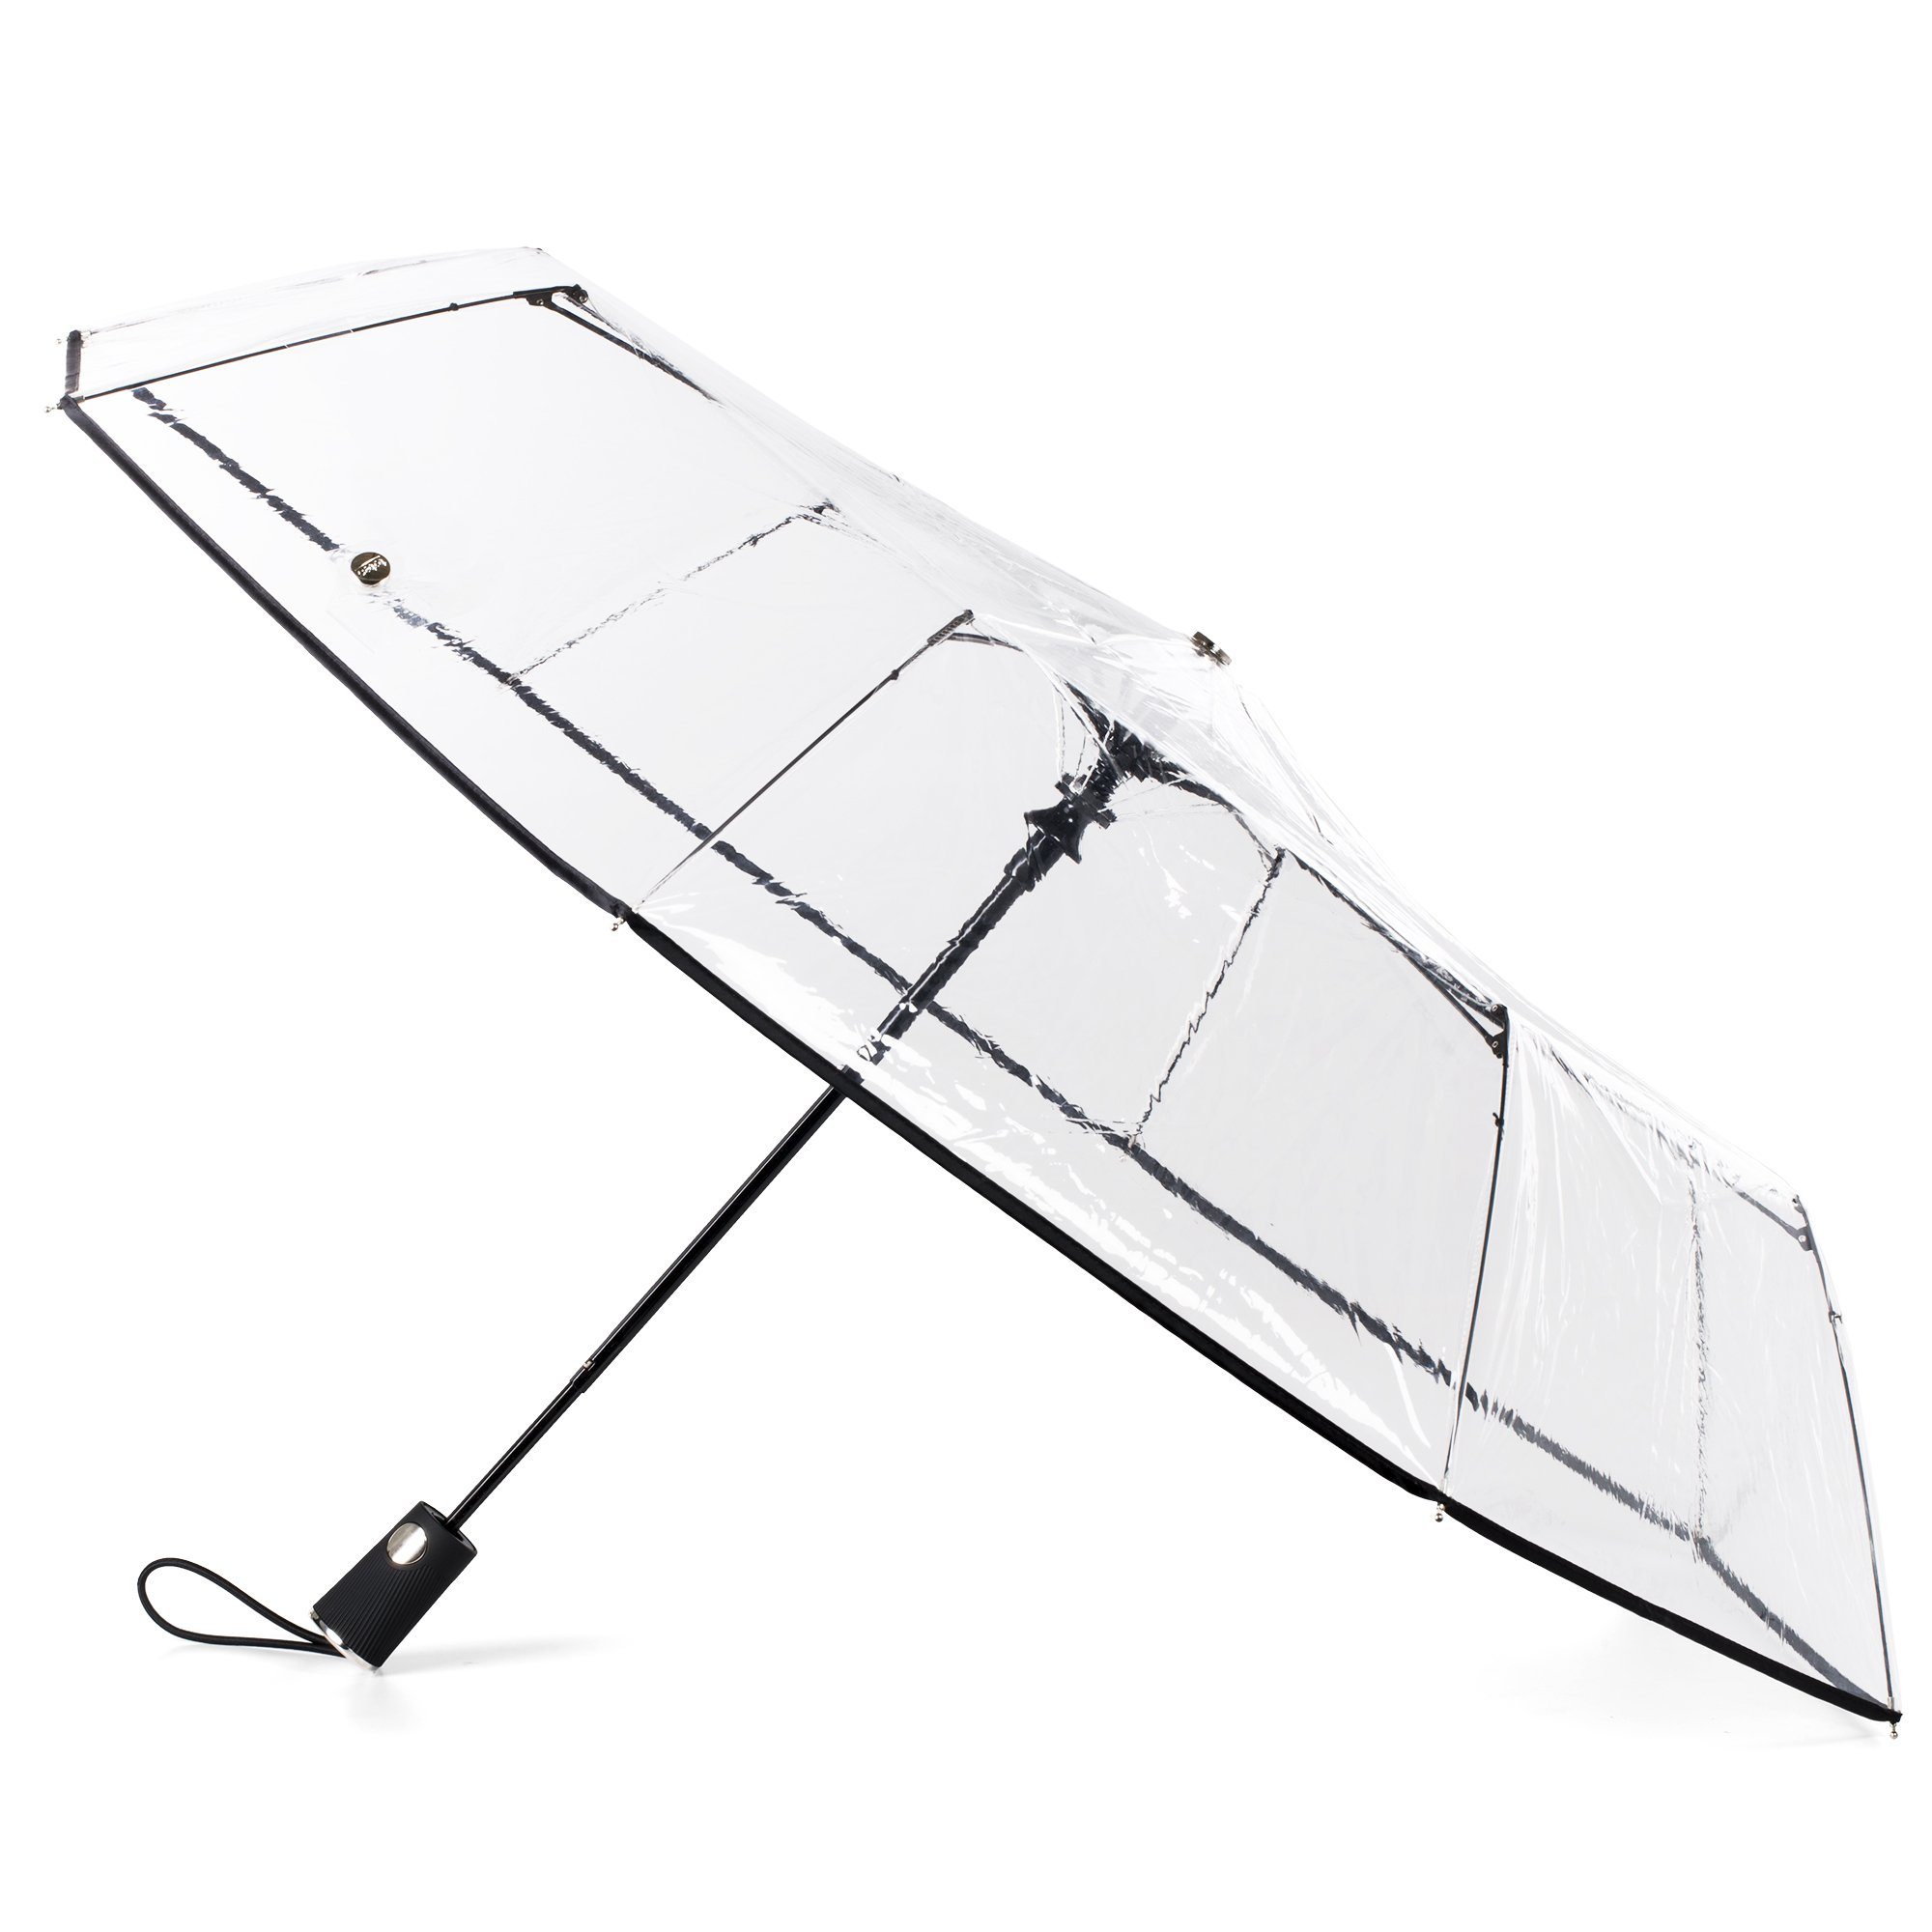 totes Clear Canopy Automatic Open Foldable Umbrella by totes